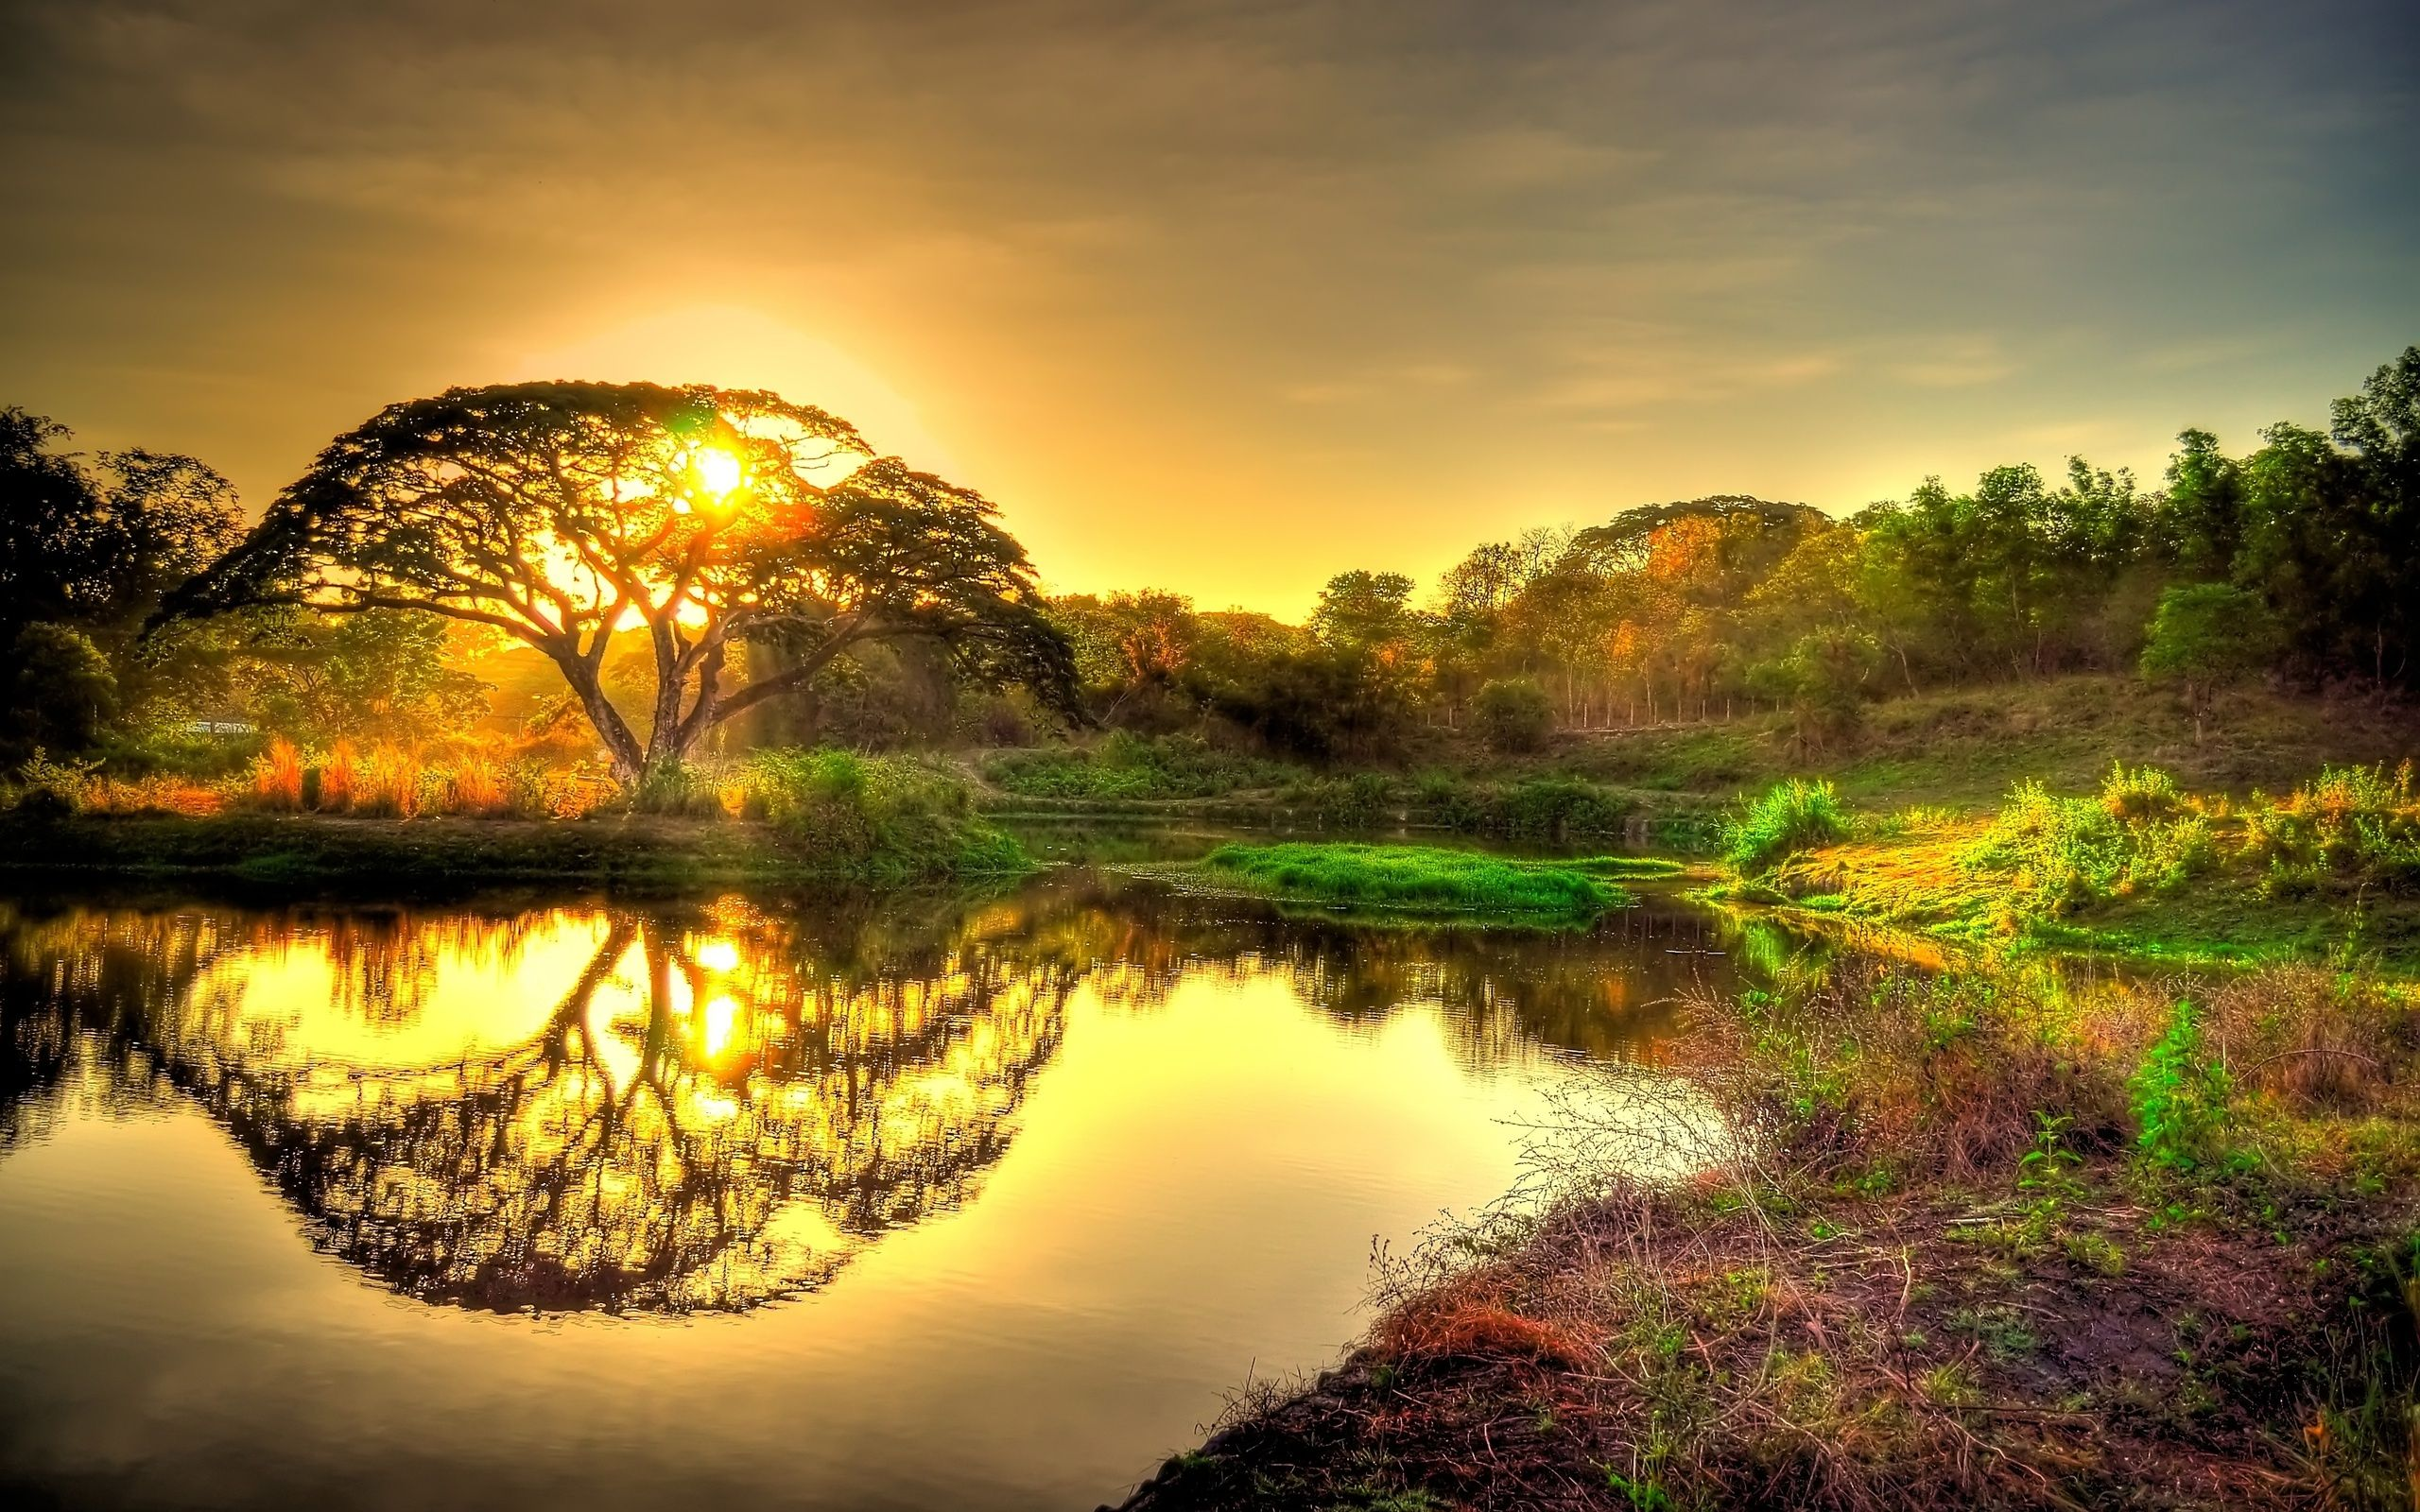 Sun Tree Jpg 2560 1600 Hd Nature Wallpapers Cool Landscapes Landscape Wallpaper